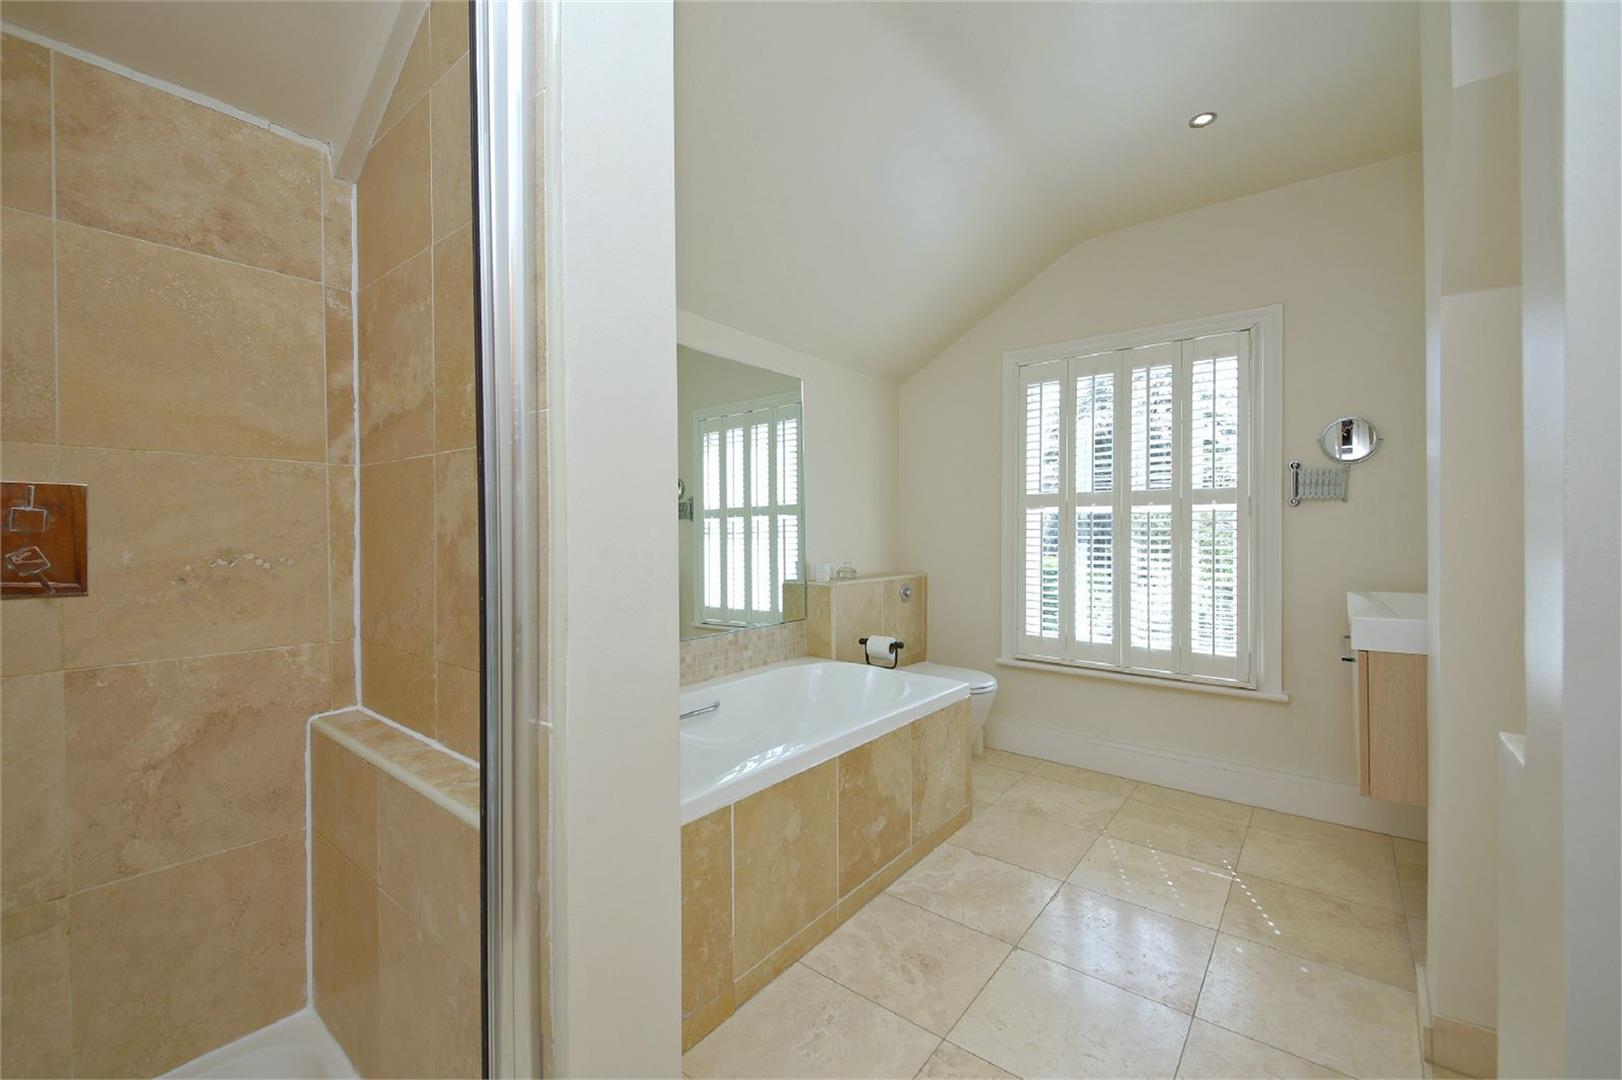 2 bed to rent in Letchmore Heath - (Property Image 7)